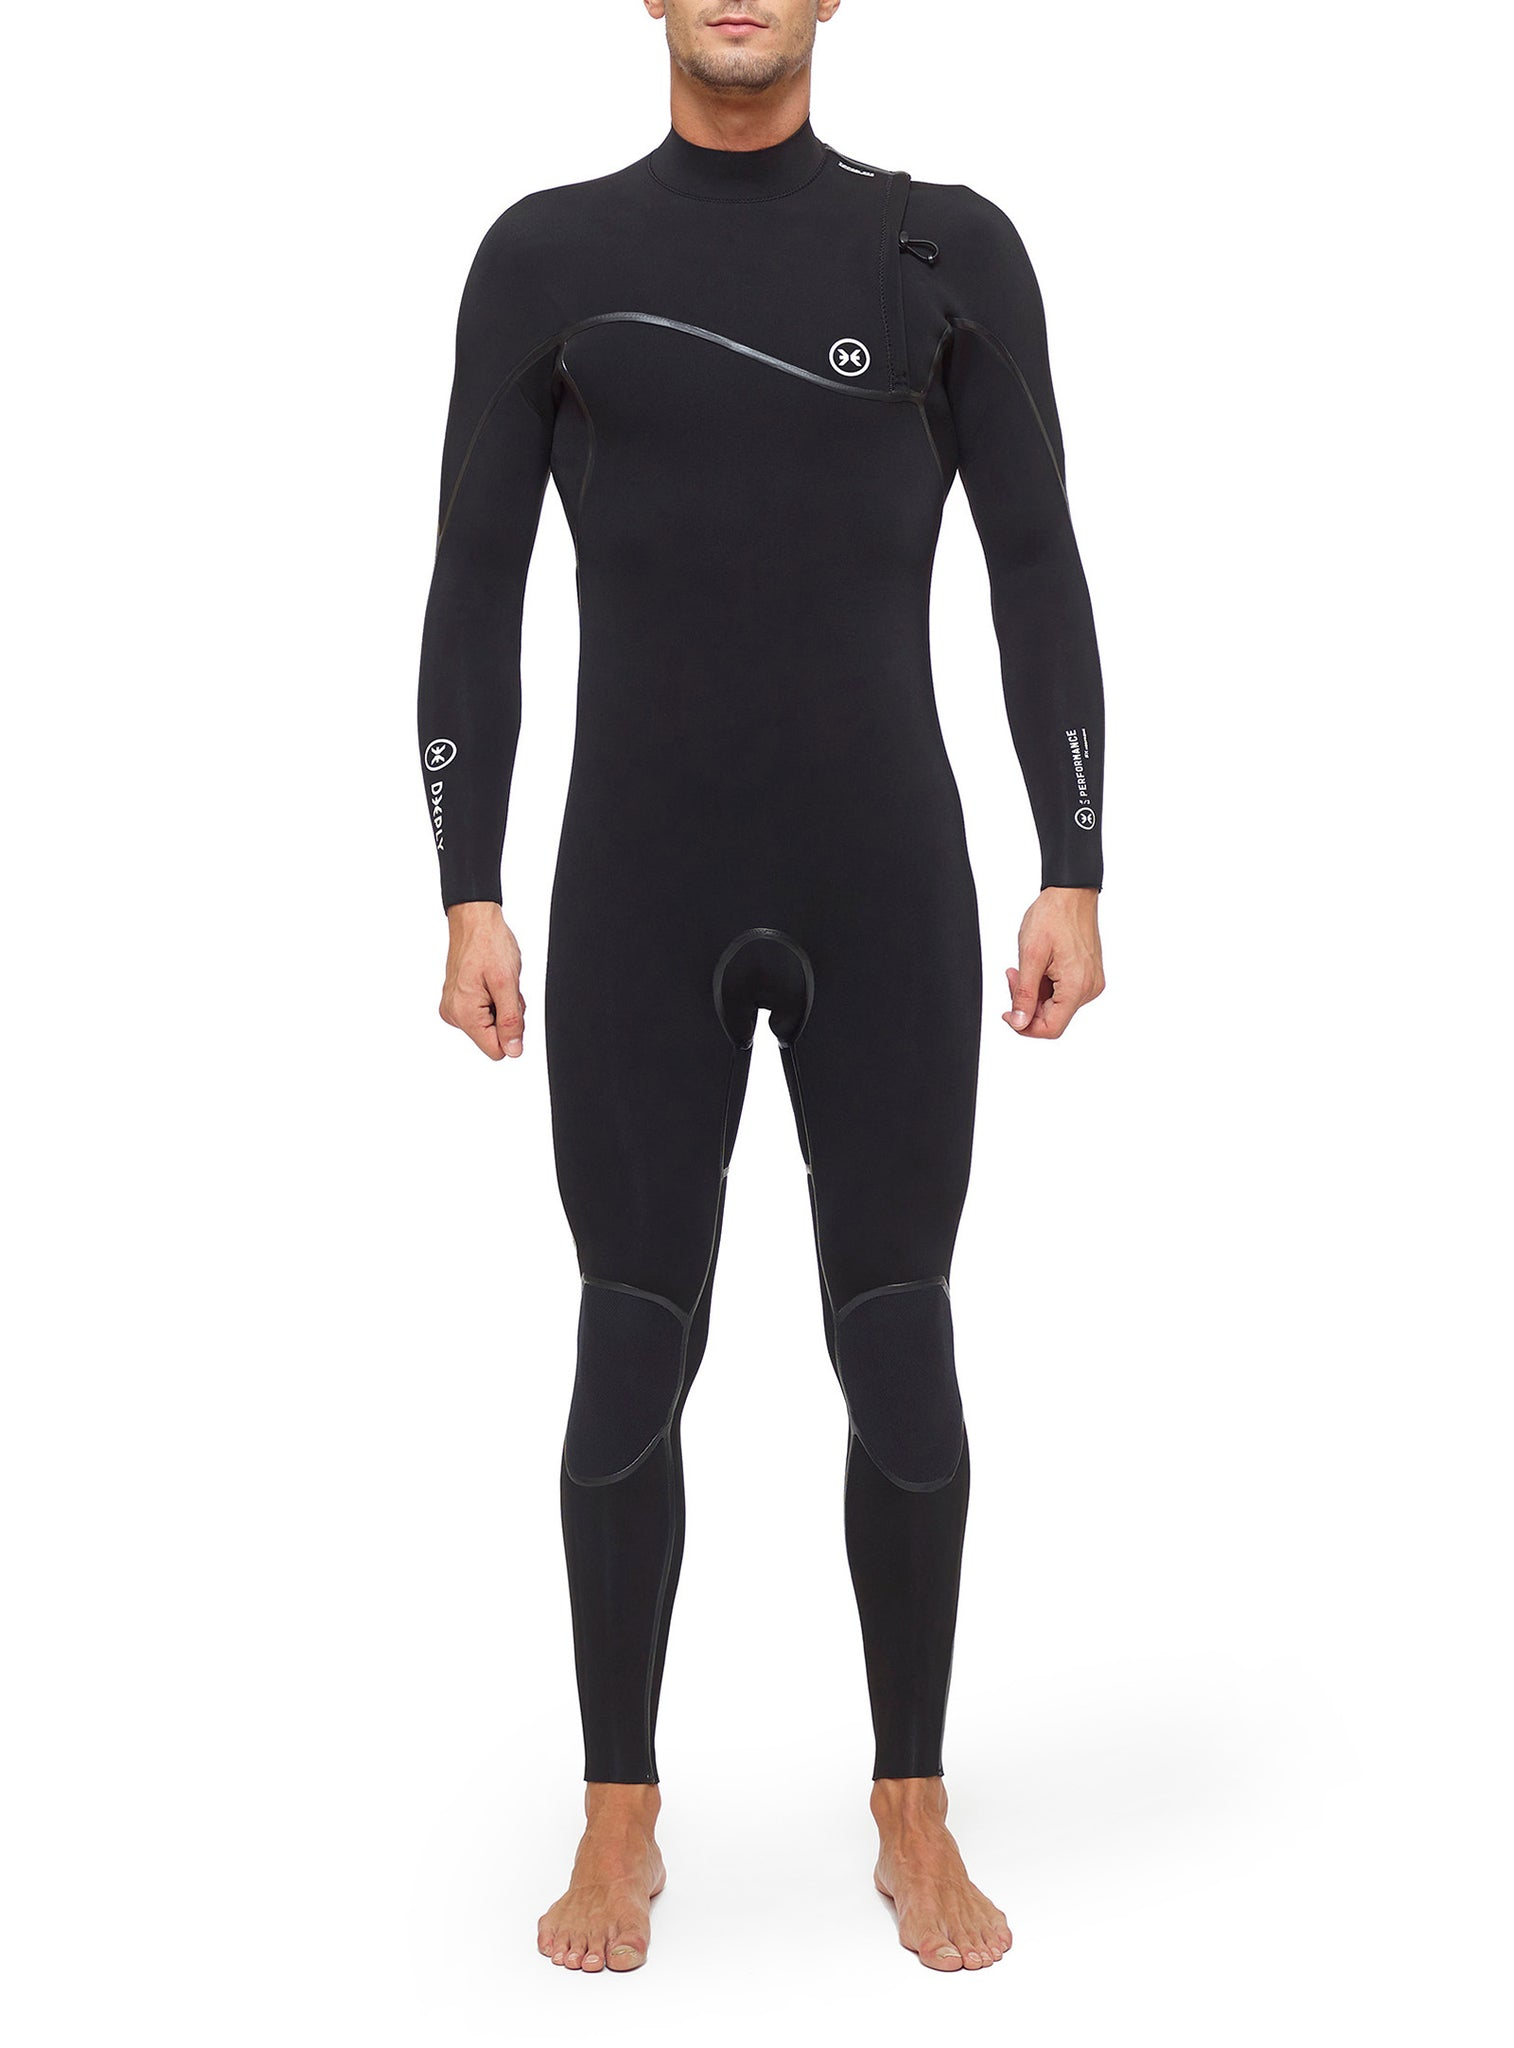 Wetsuit Man Performance 4/3 Zipperless Black